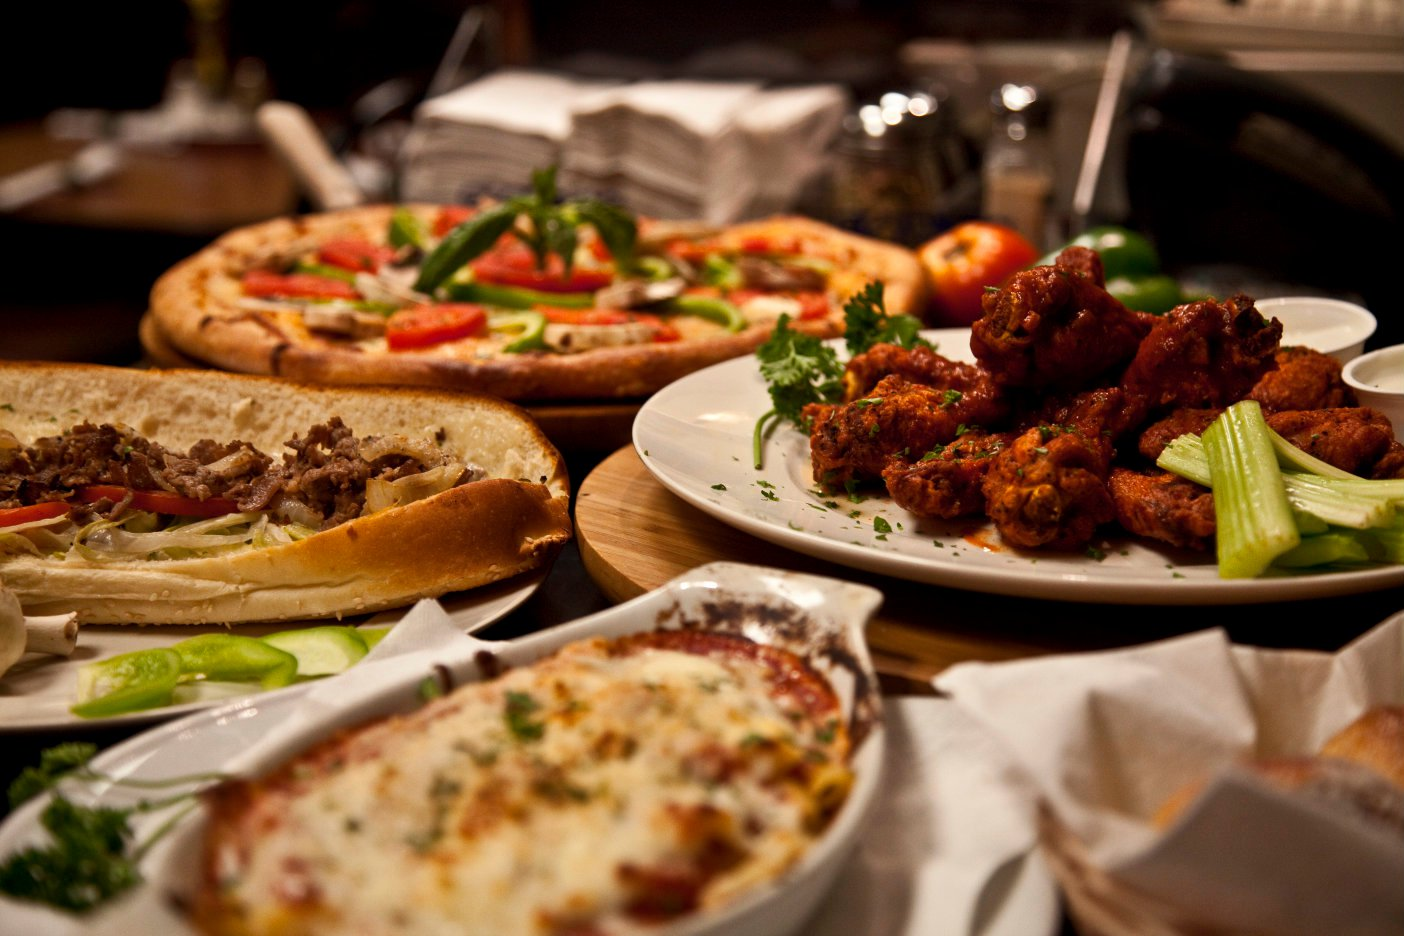 Table covered with dishes of food, a pizza platter, salads and more